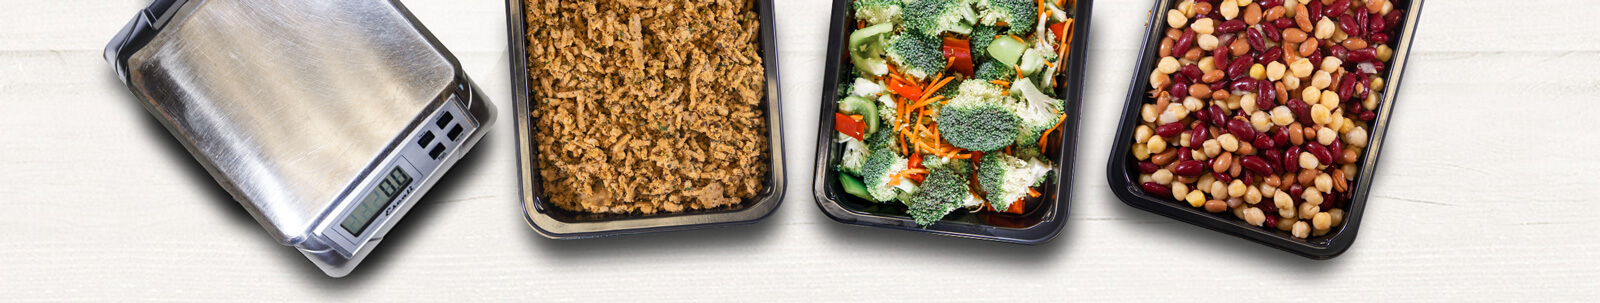 Top down picture of healthy  custom meal ingredients that you can combine in any way to create your own meal